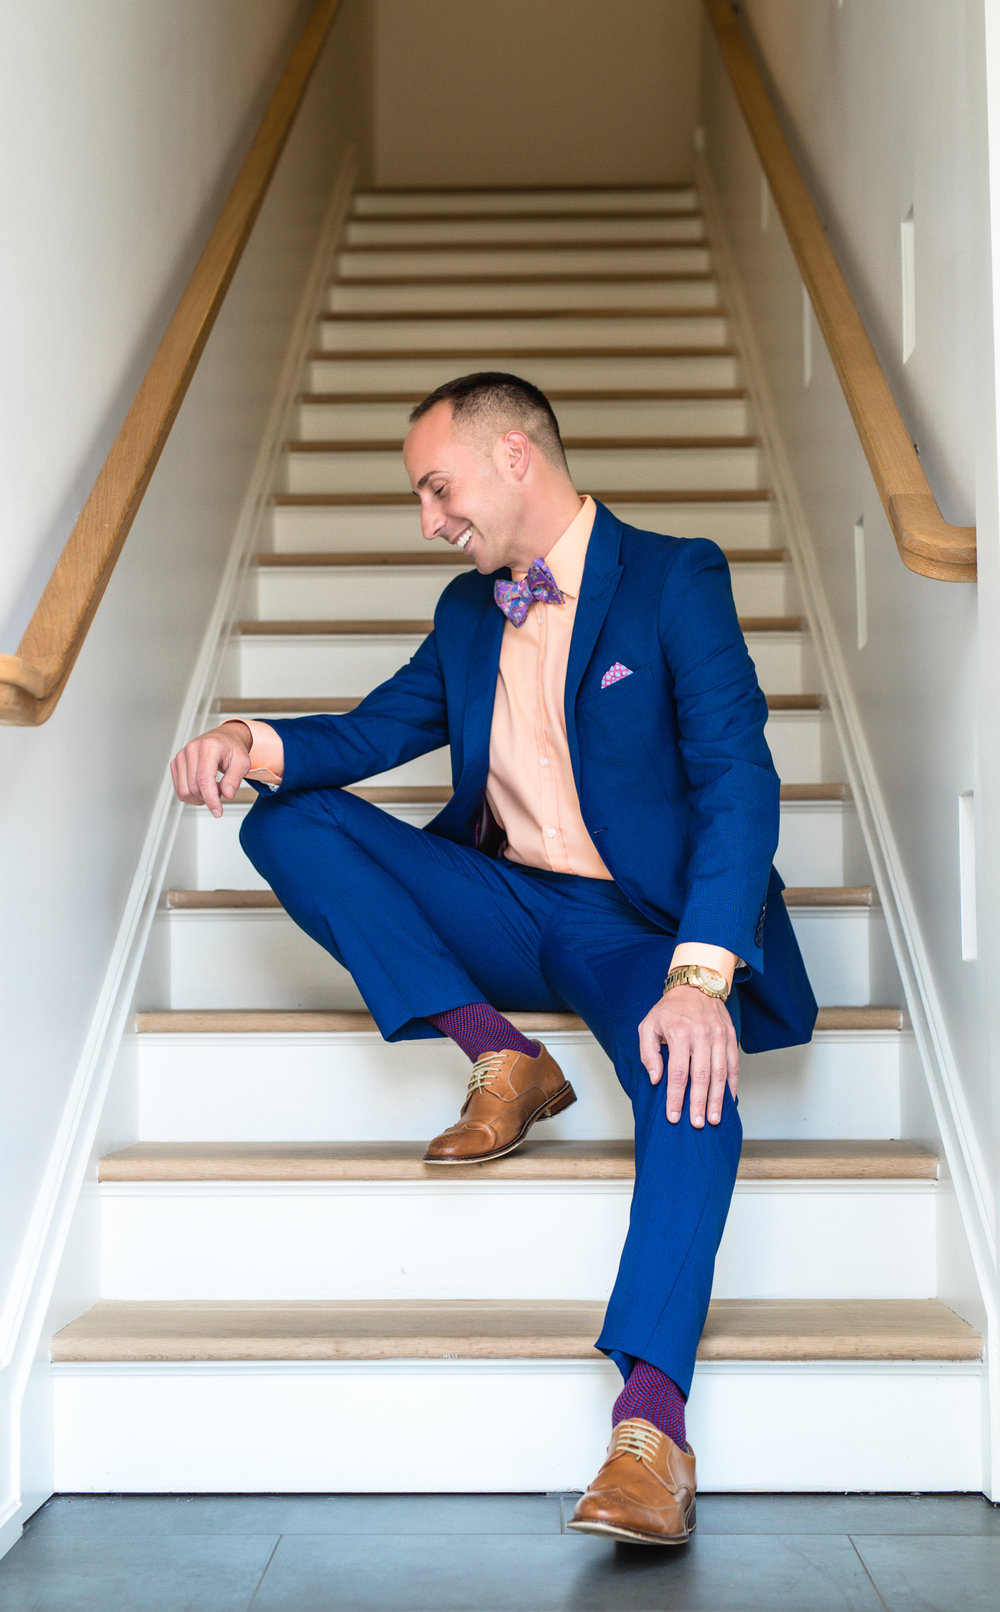 We ALL need a boost sometimes. This image perfectly captures my client and who he is. Fancy stylish socks and all. ;)  (c) 2018 Cate Scaglione | LifeasFineArt.com